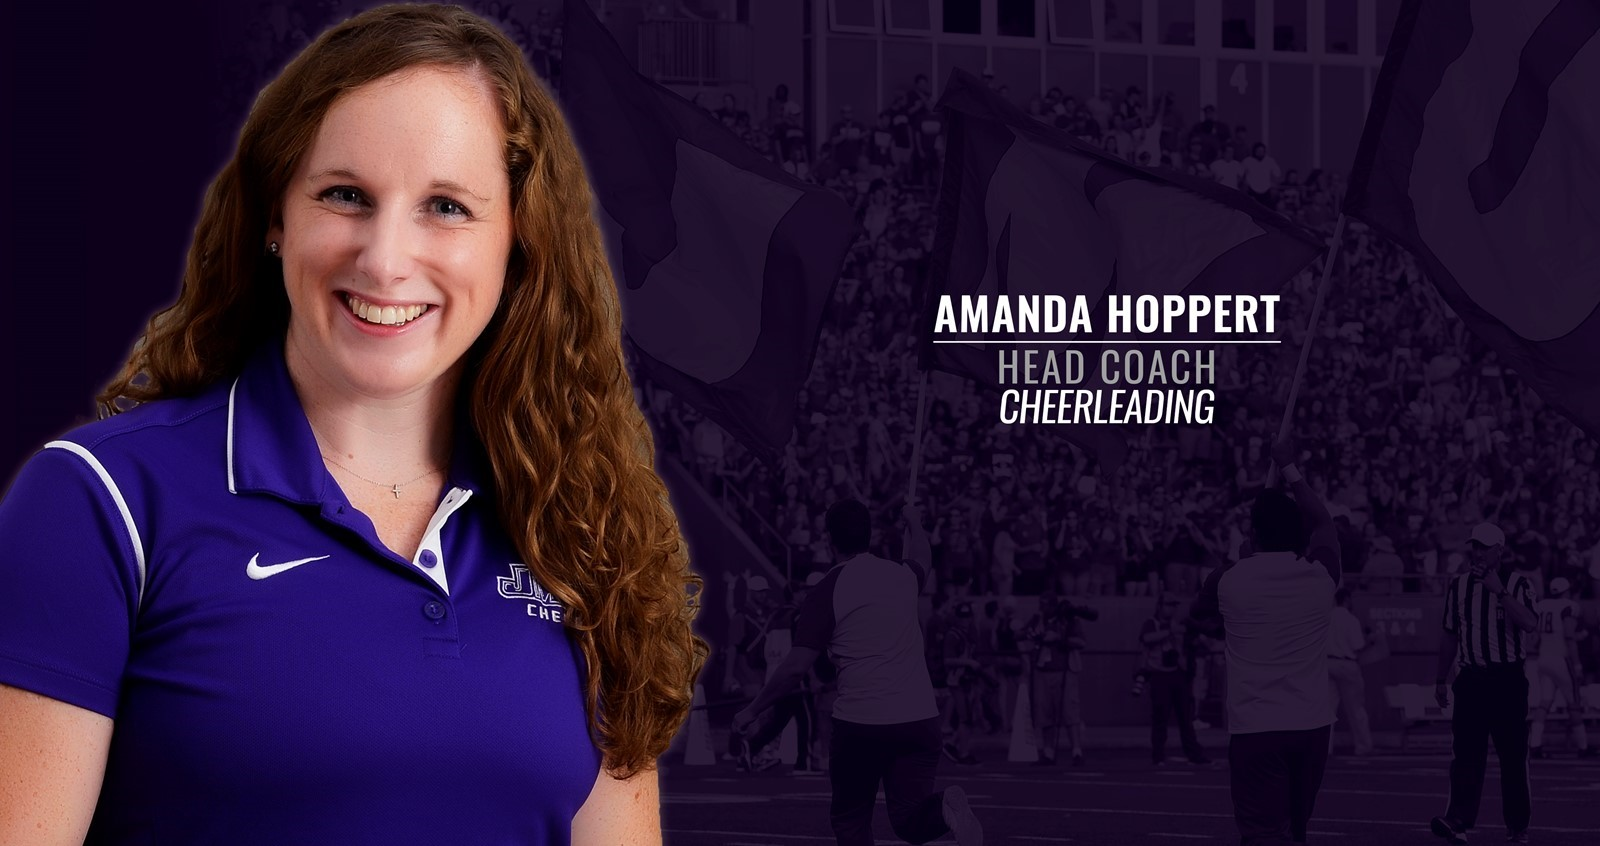 Cheerleading: JMU Hires Amanda Hoppert as Head Cheerleading Coach